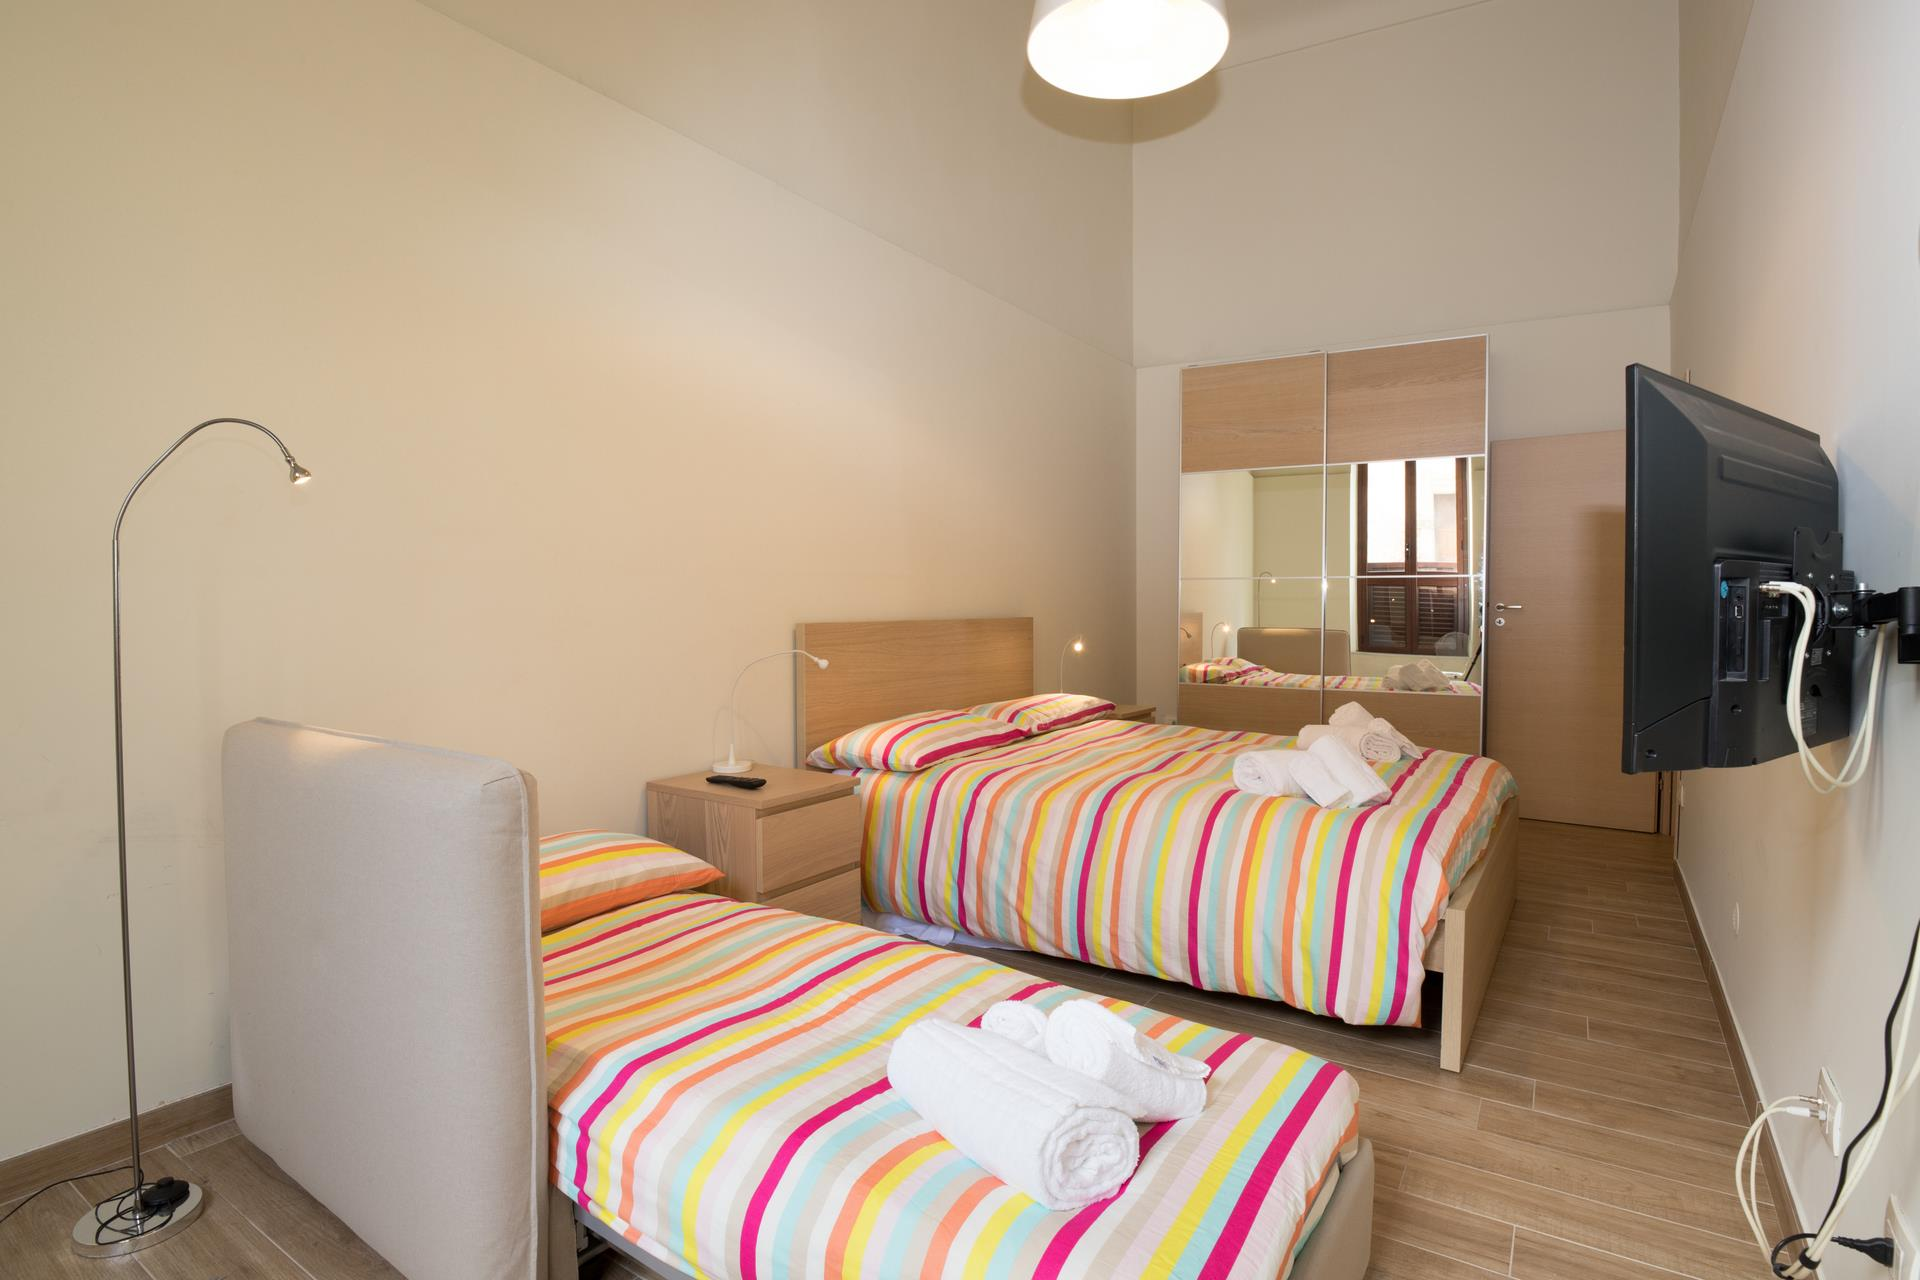 Apartment Apt E - Wellness House Galilei 9 sleeps photo 18685052